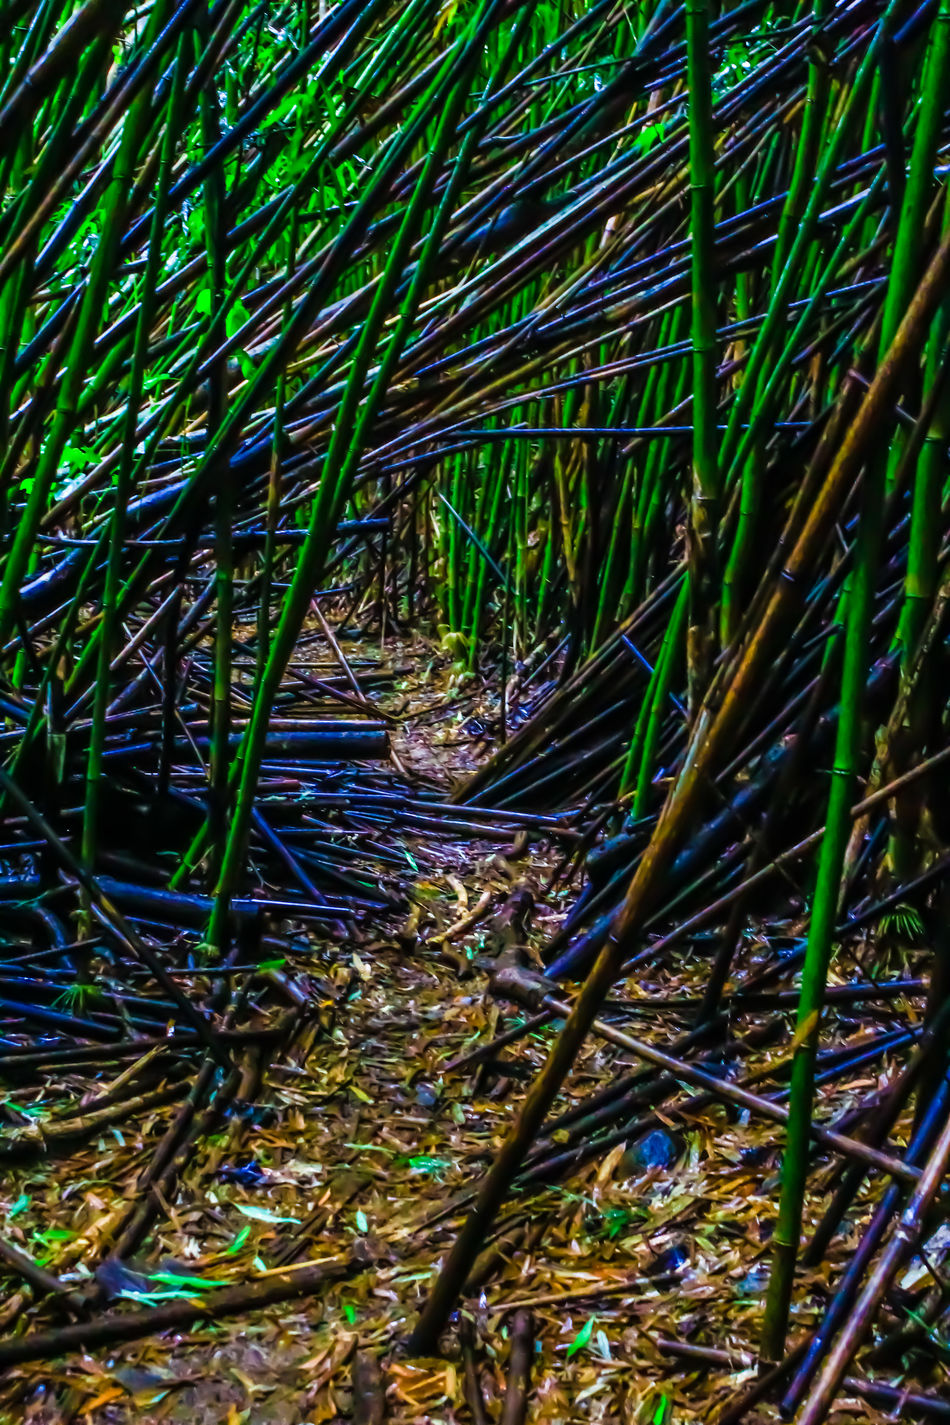 Abundance Bamboo Bamboo Tunnel Change Close-up Dry Farm Field Forest Tunnel Full Frame Glowing Grass Growing Growth Nature No People Outdoors Plant Stem Tropical Climate Uncultivated